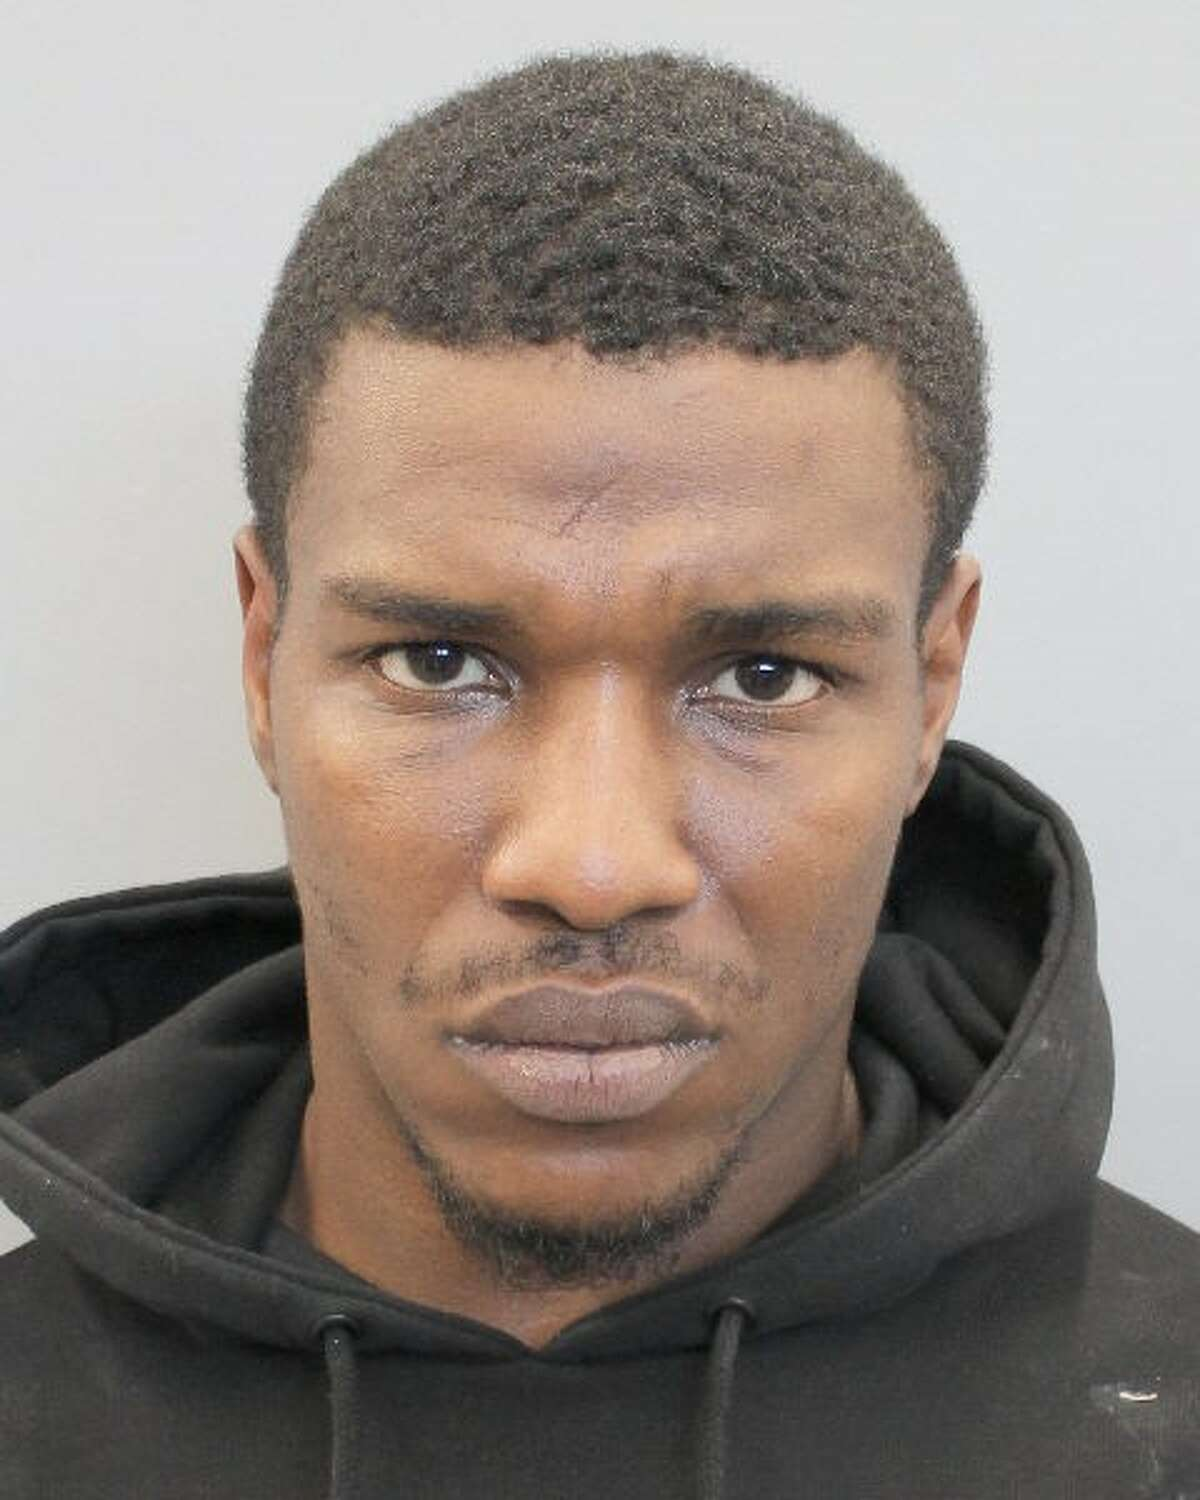 Zacchaeus Rashad Gaston, 27, is wanted in connection with the Thursday shooting death of his estranged girlfriend, according to the Houston Police Department.